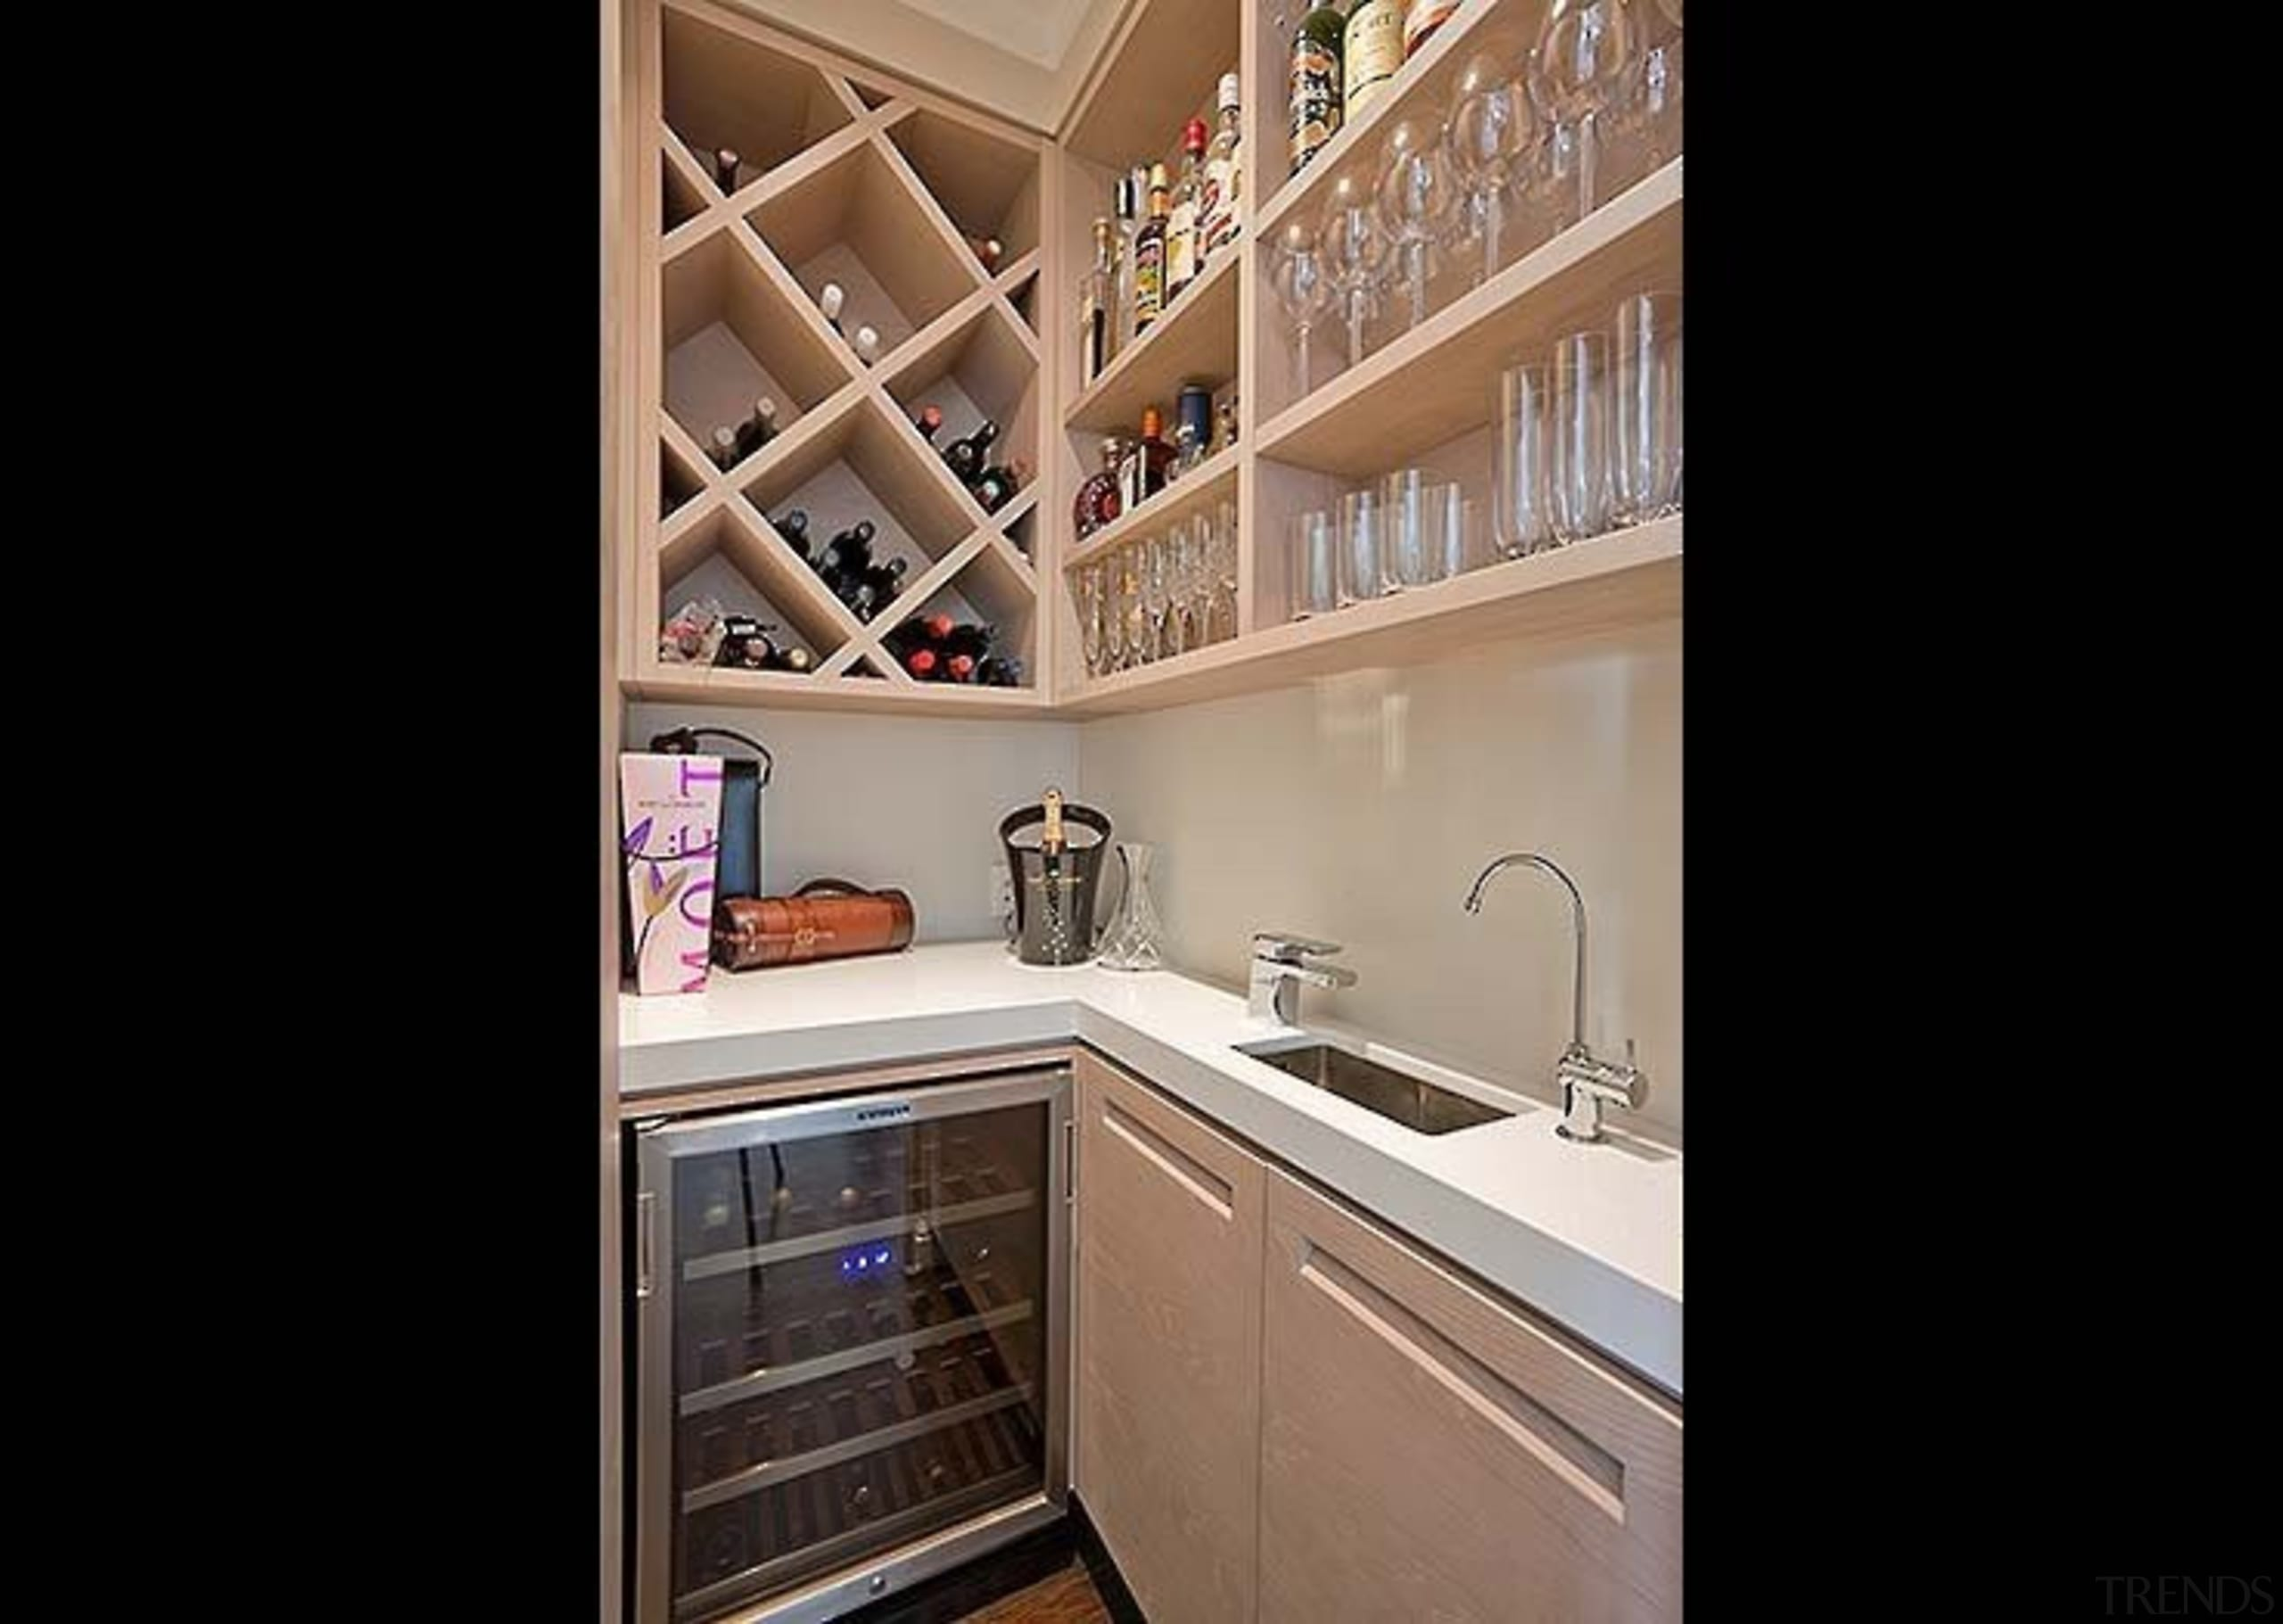 Bistro Style WR - cabinetry | countertop | cabinetry, countertop, home, interior design, kitchen, property, real estate, room, black